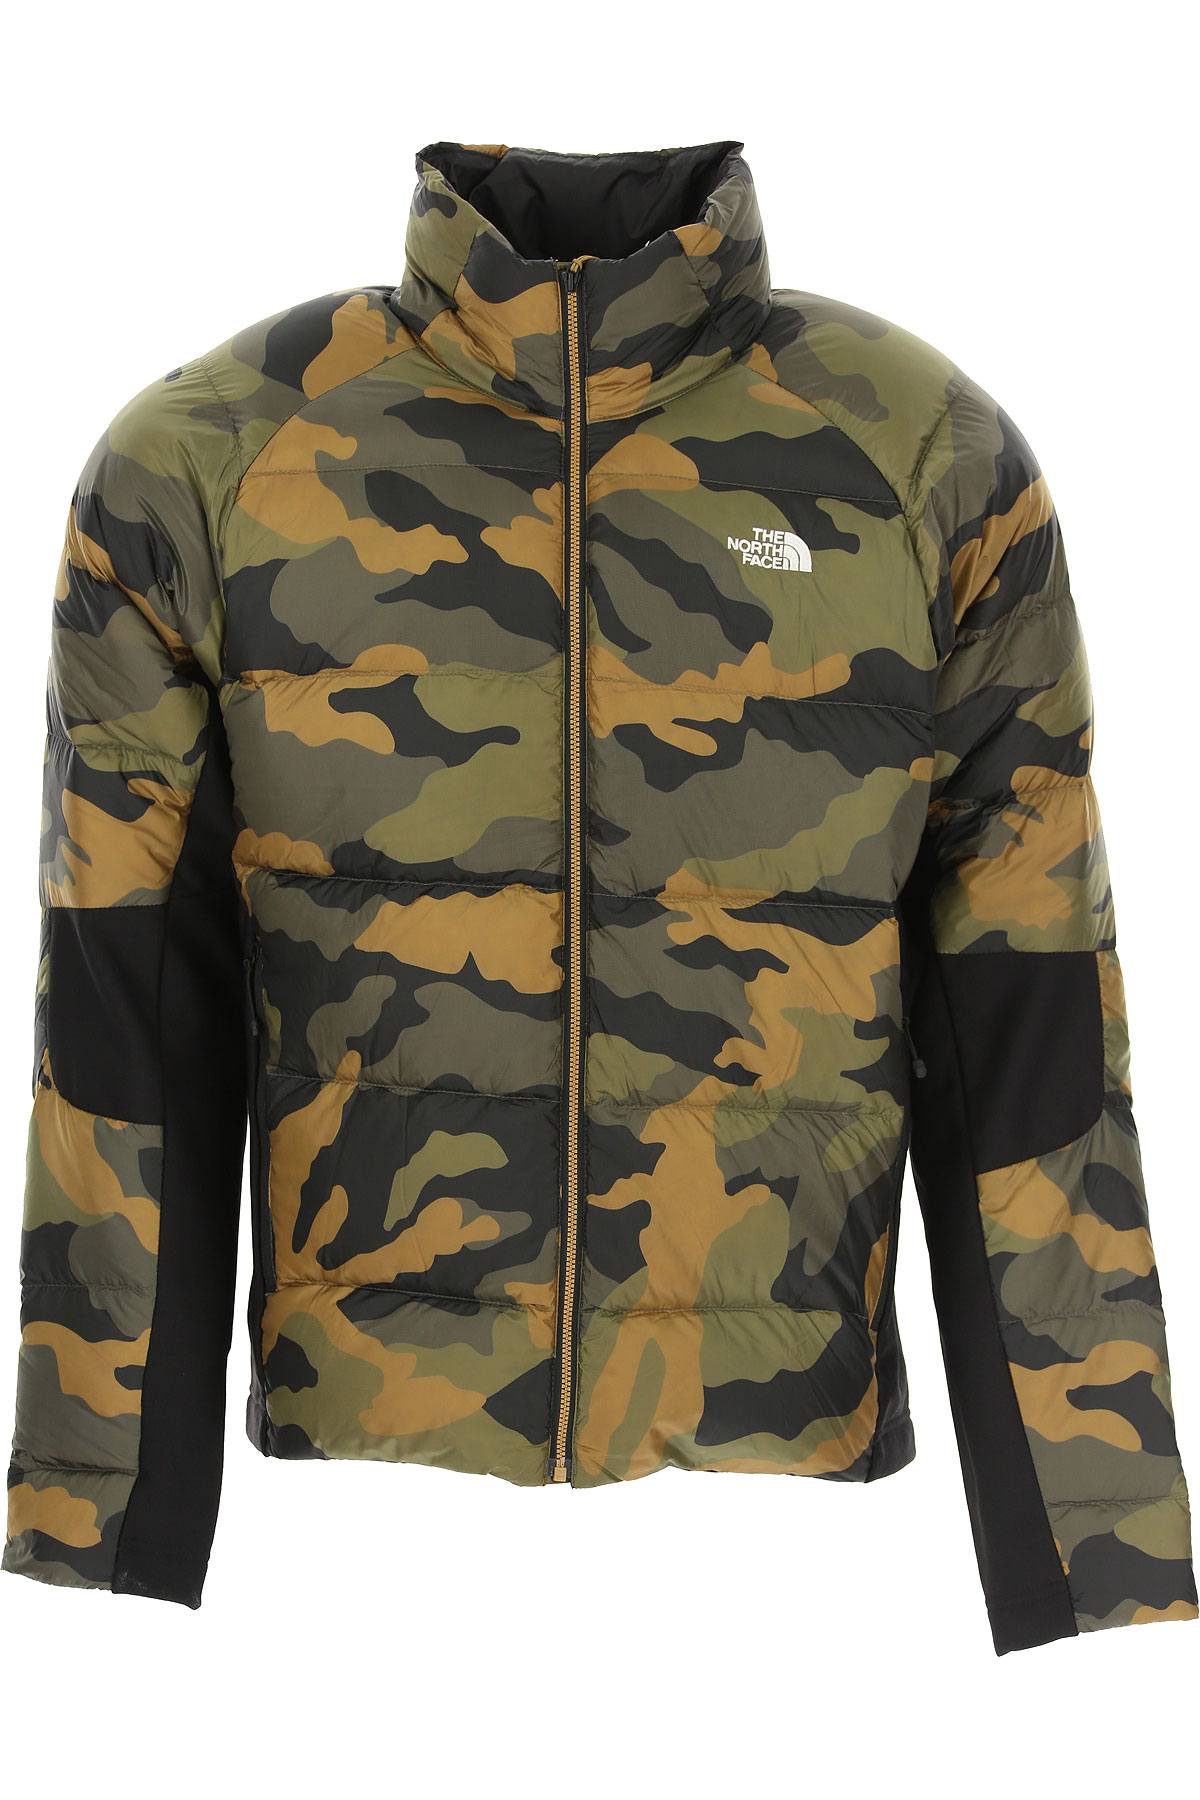 The North Face Down Jacket for Men, Puffer Ski Jacket On Sale, camouflage, Nylon, 2019, L M